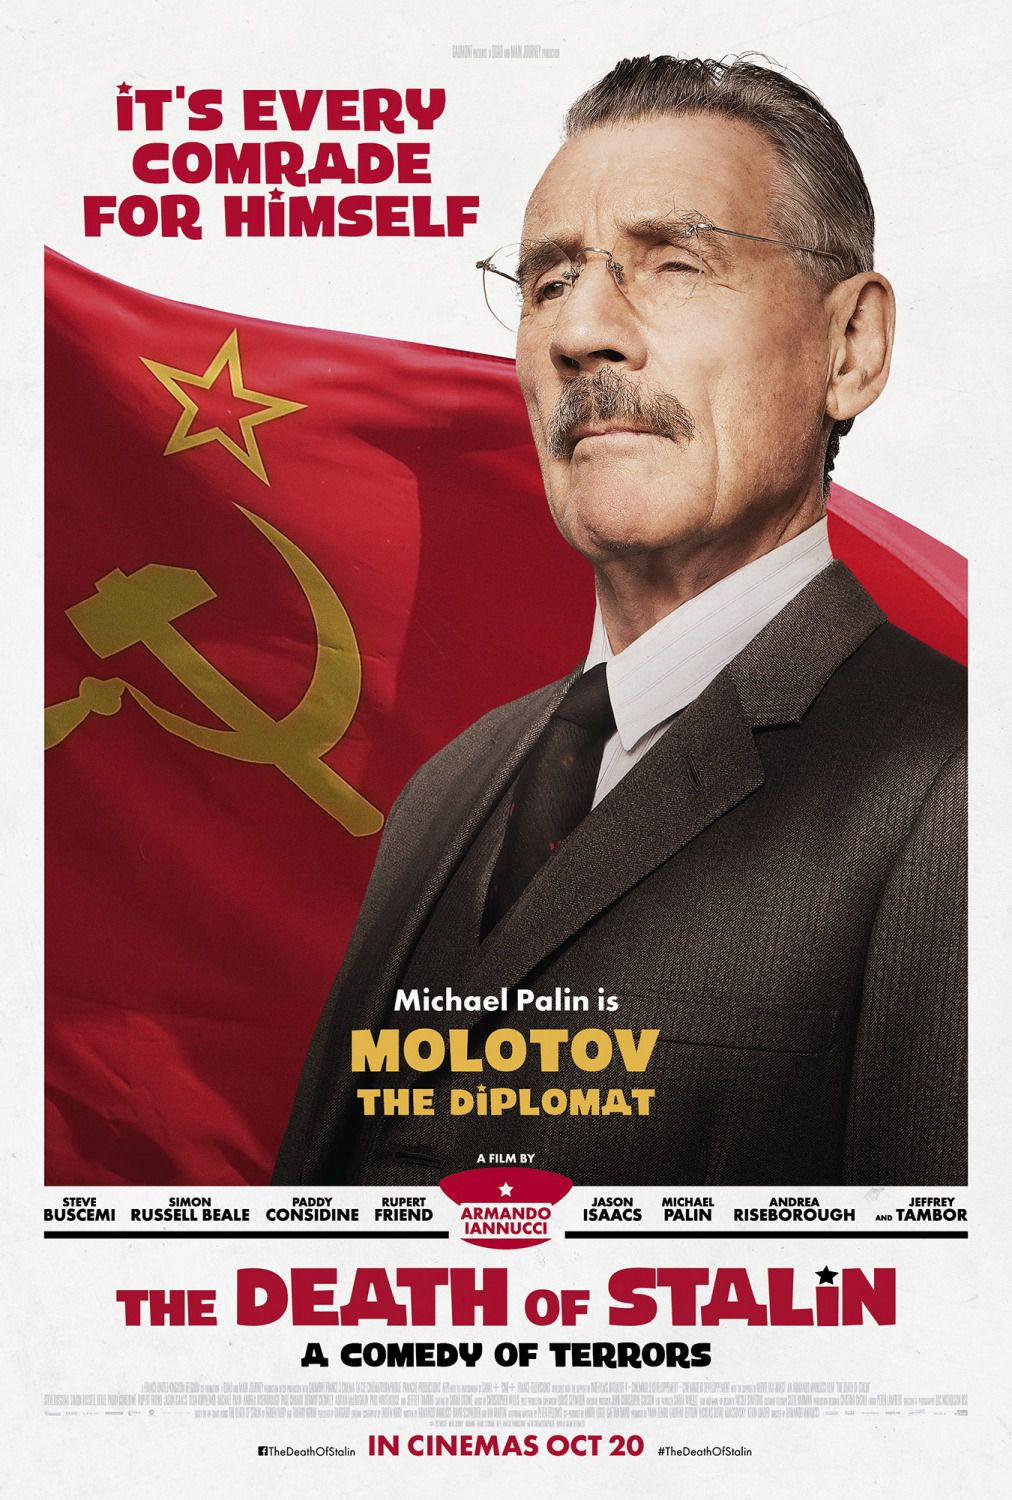 Michael Palin is Molotov the Diplomat